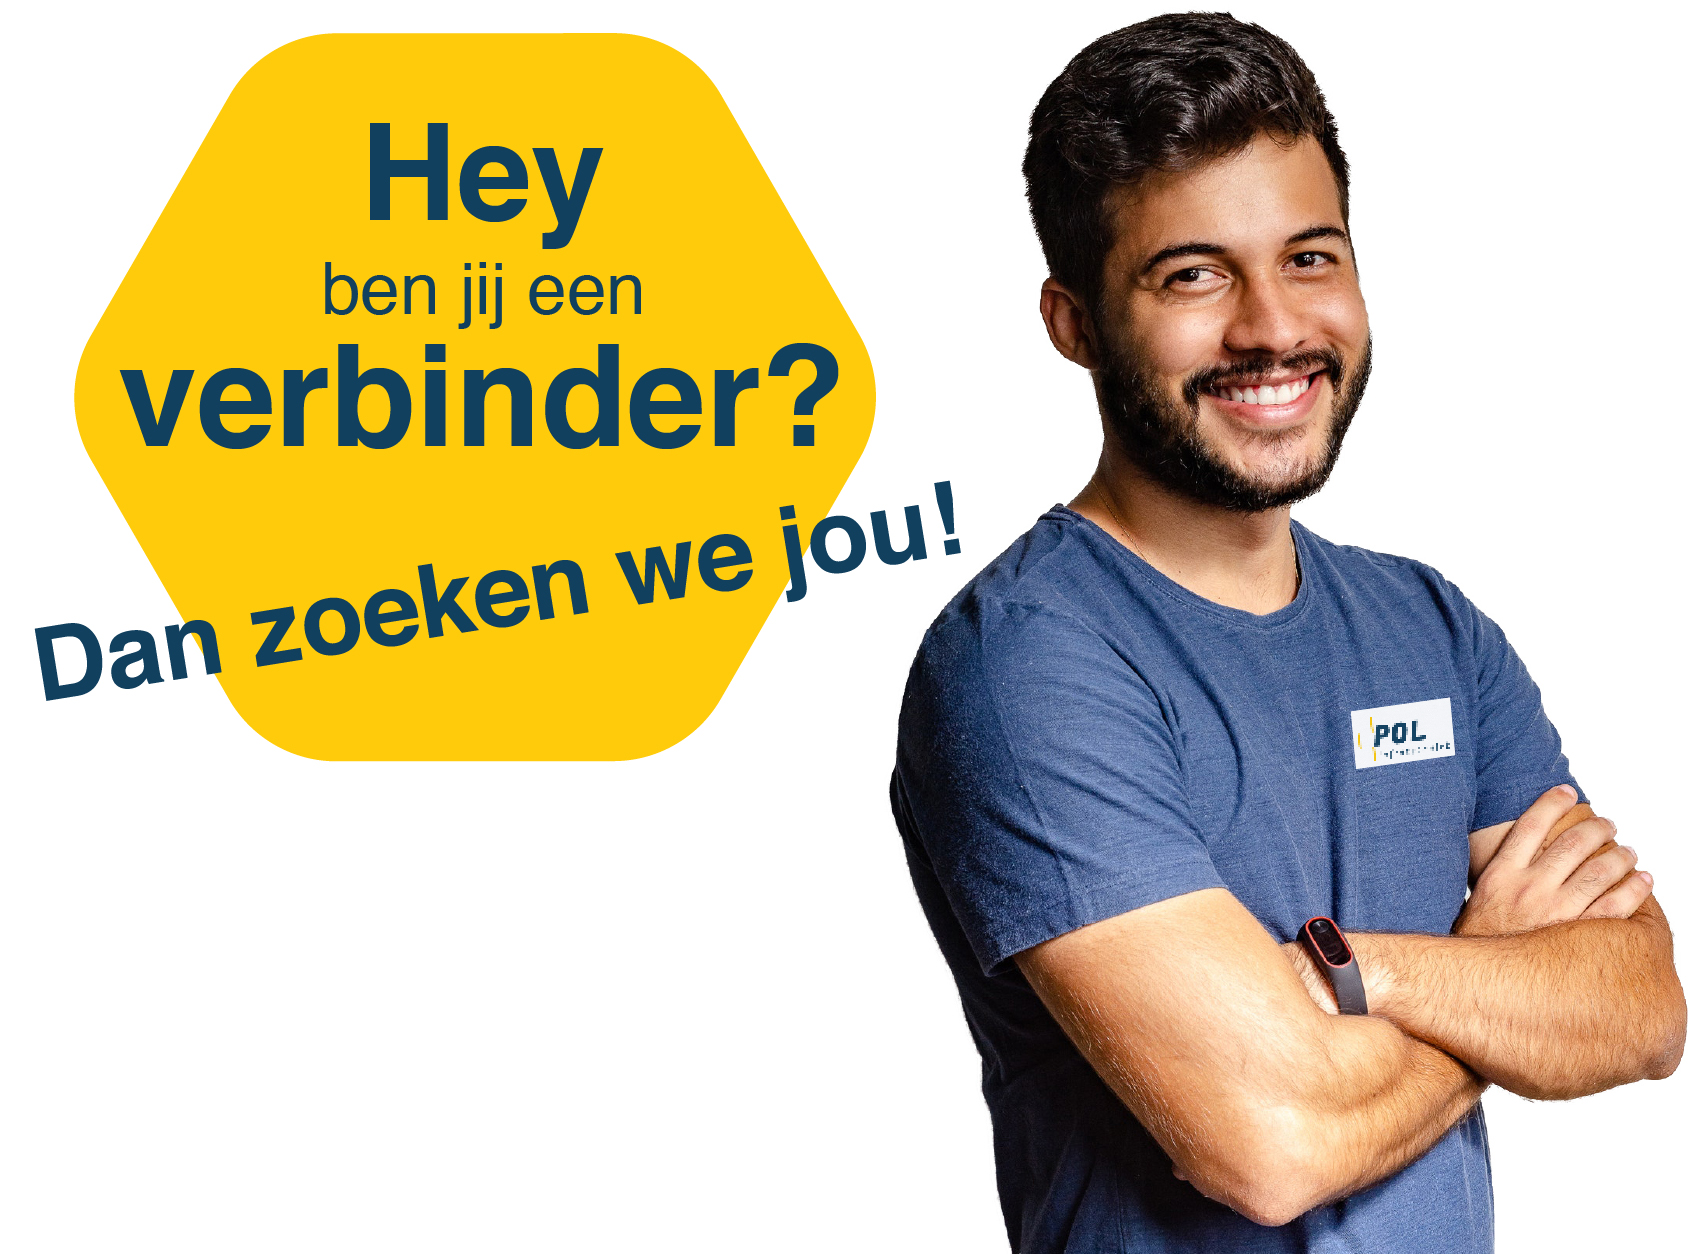 Pol vacature campagne site banner